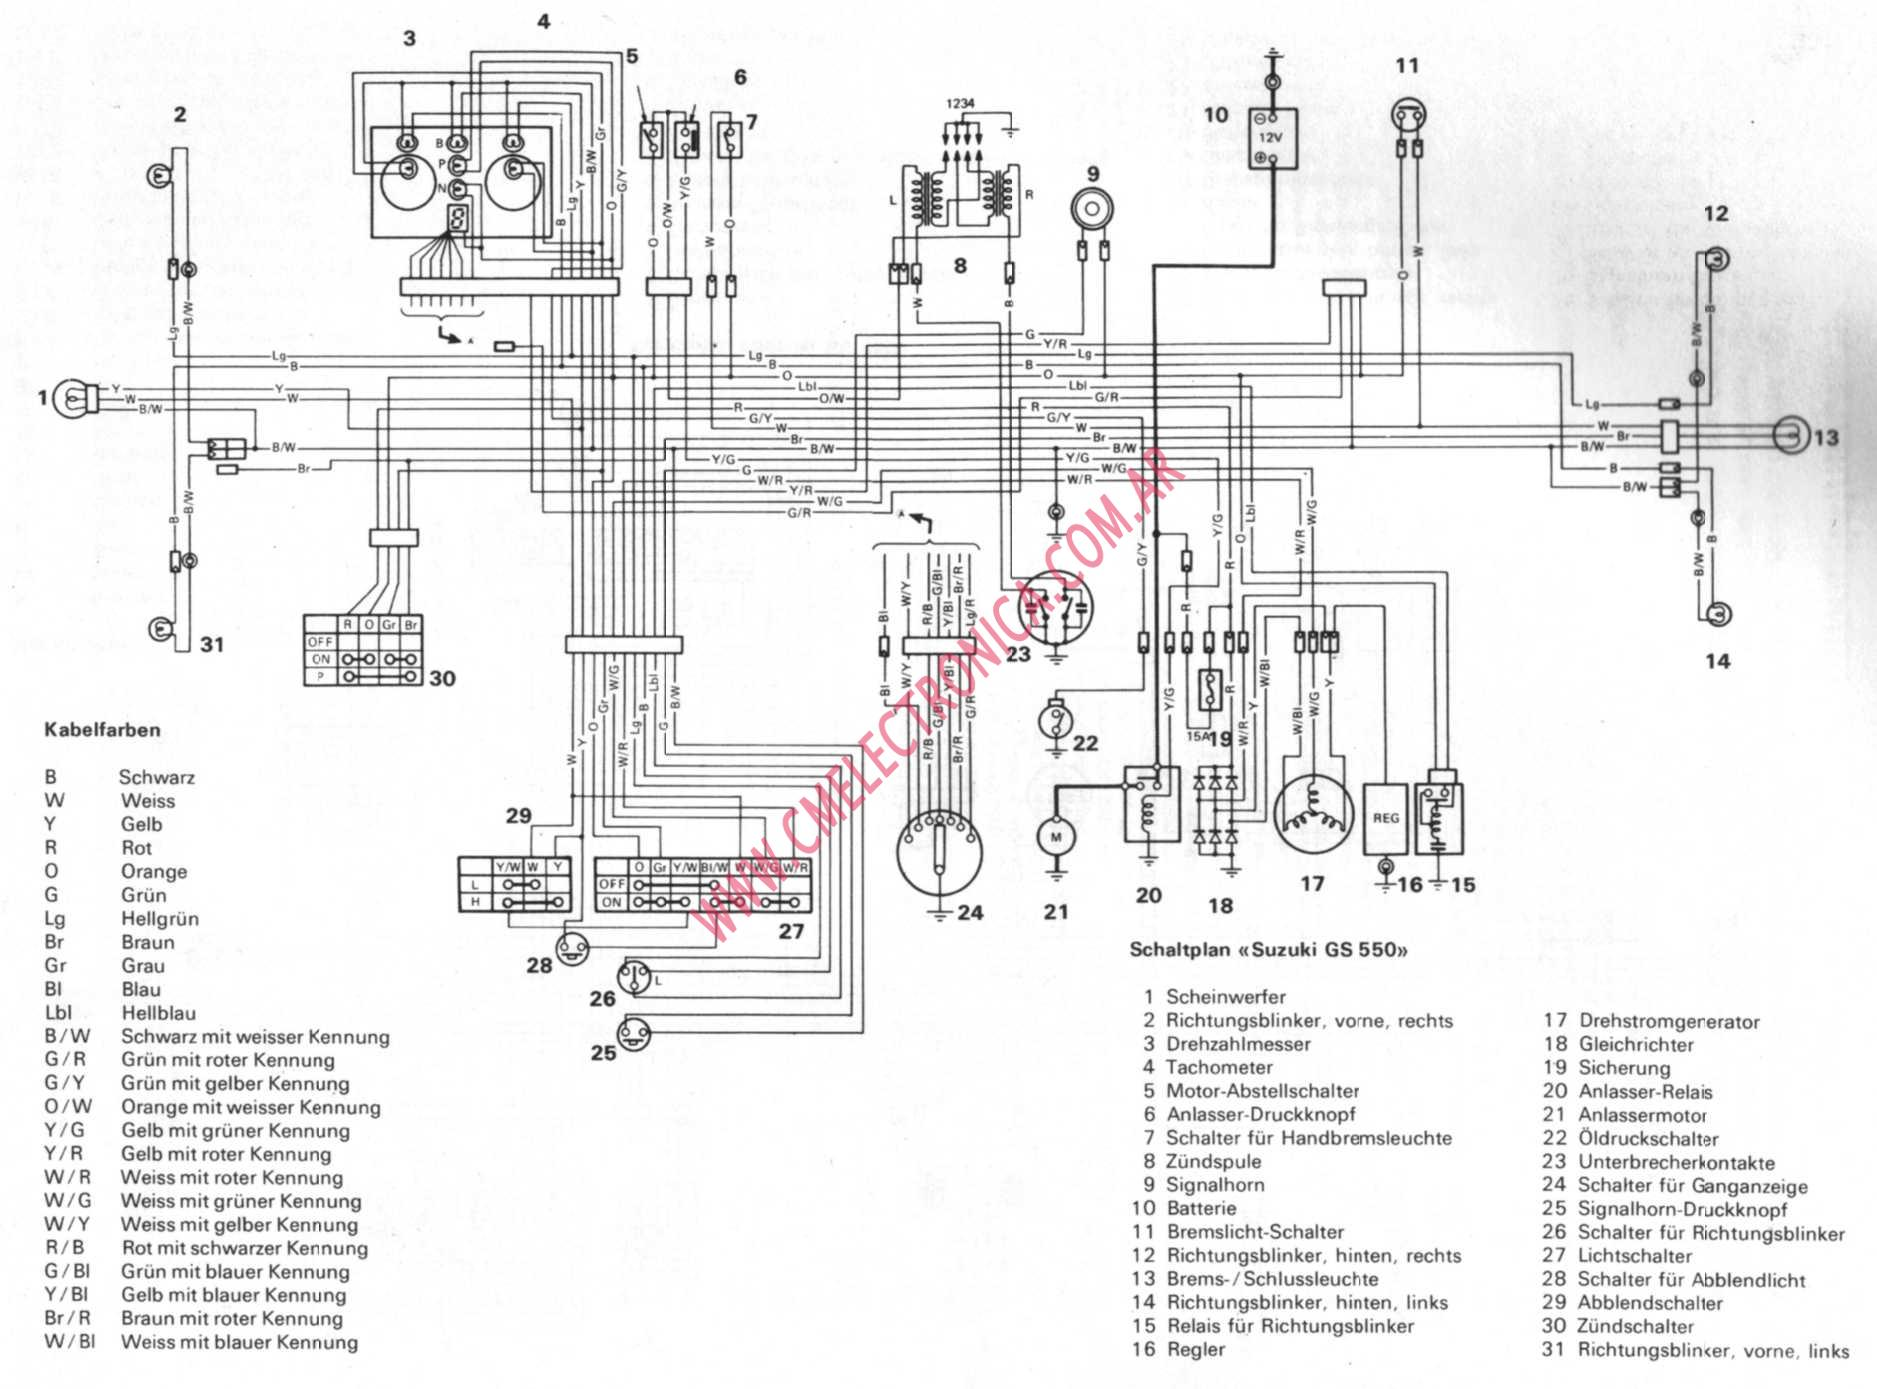 suzuki gs550 suzuki gs550 wiring diagram 1978 suzuki gs 550 wiring \u2022 free 1980 gs550e wiring diagram at bayanpartner.co